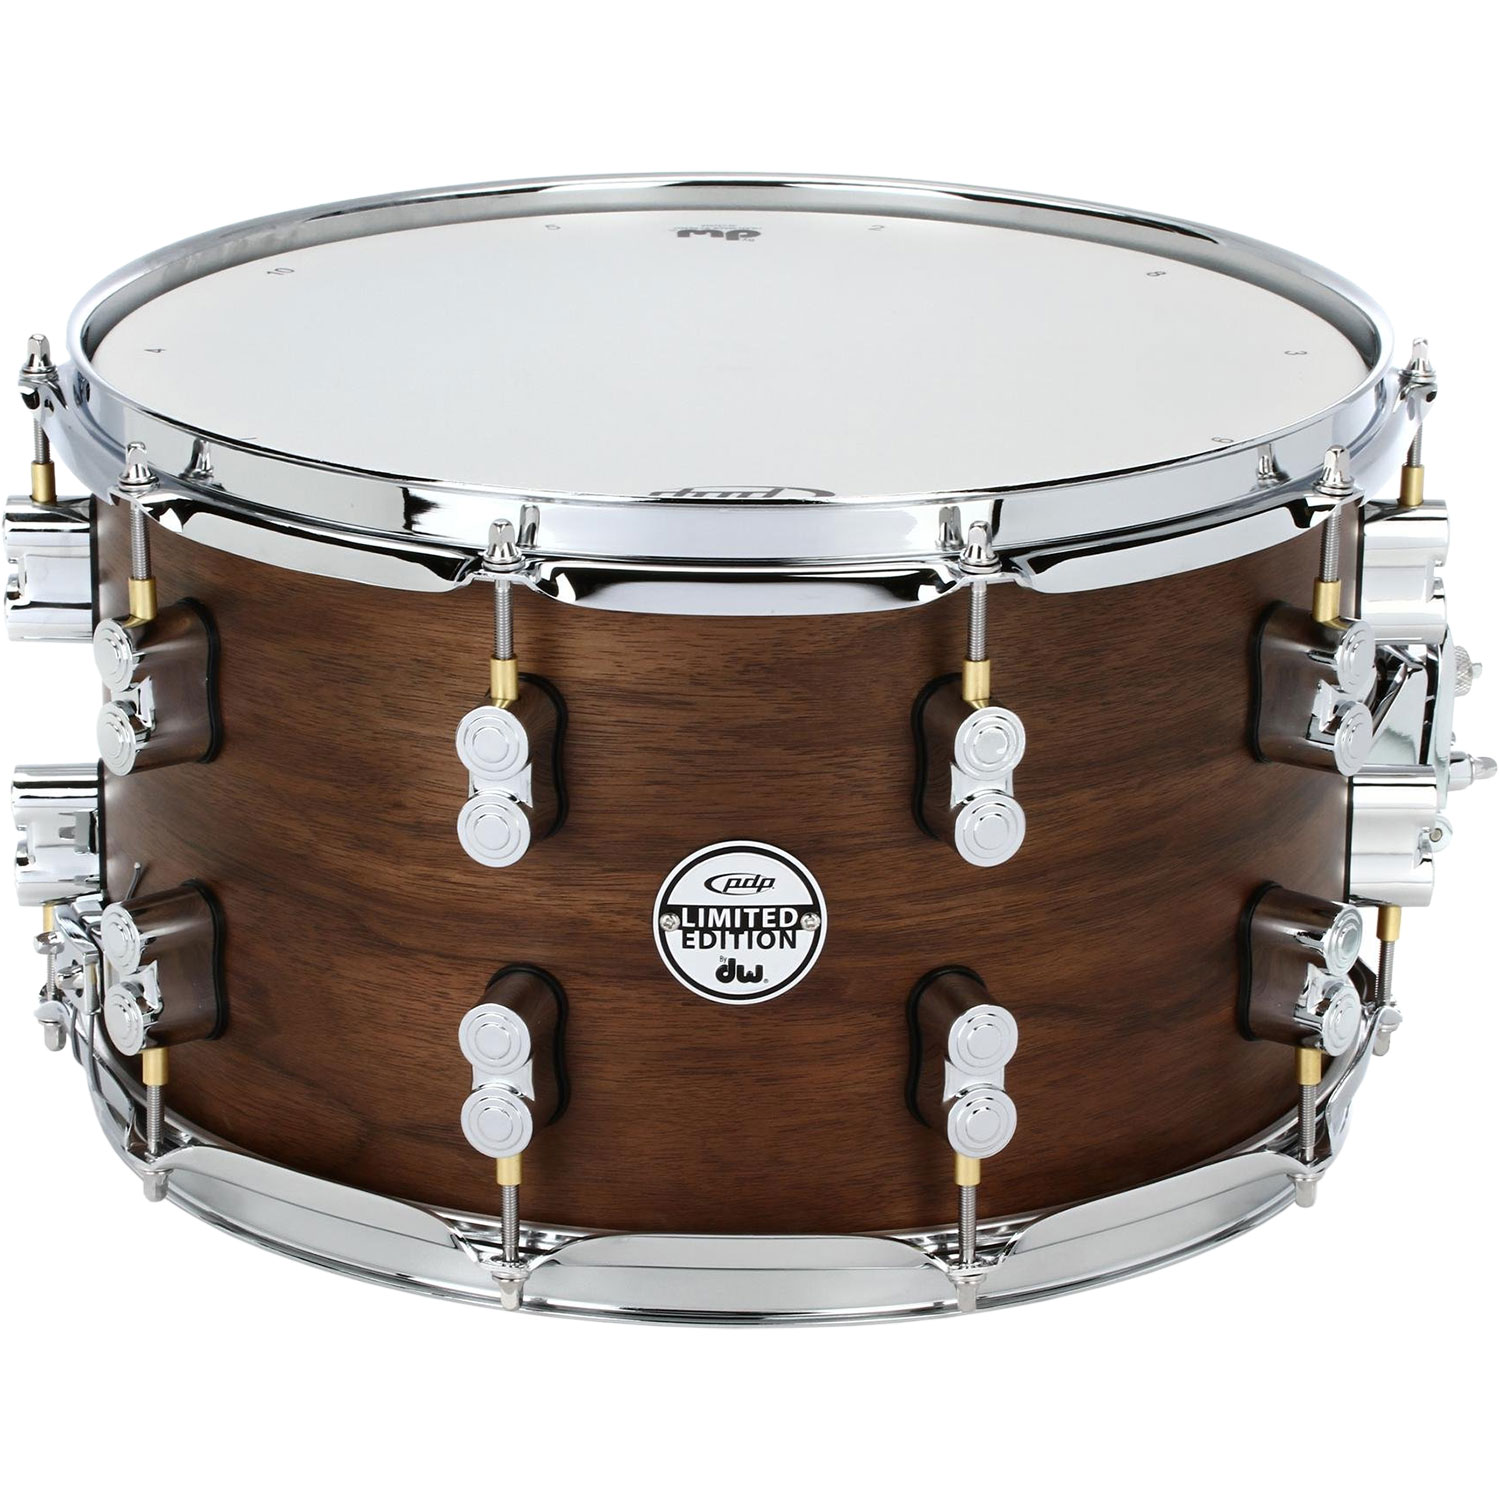 "PDP 8"" x 14"" Limited Edition Series 20-Ply Maple/Walnut Snare Drum in Natural Satin"